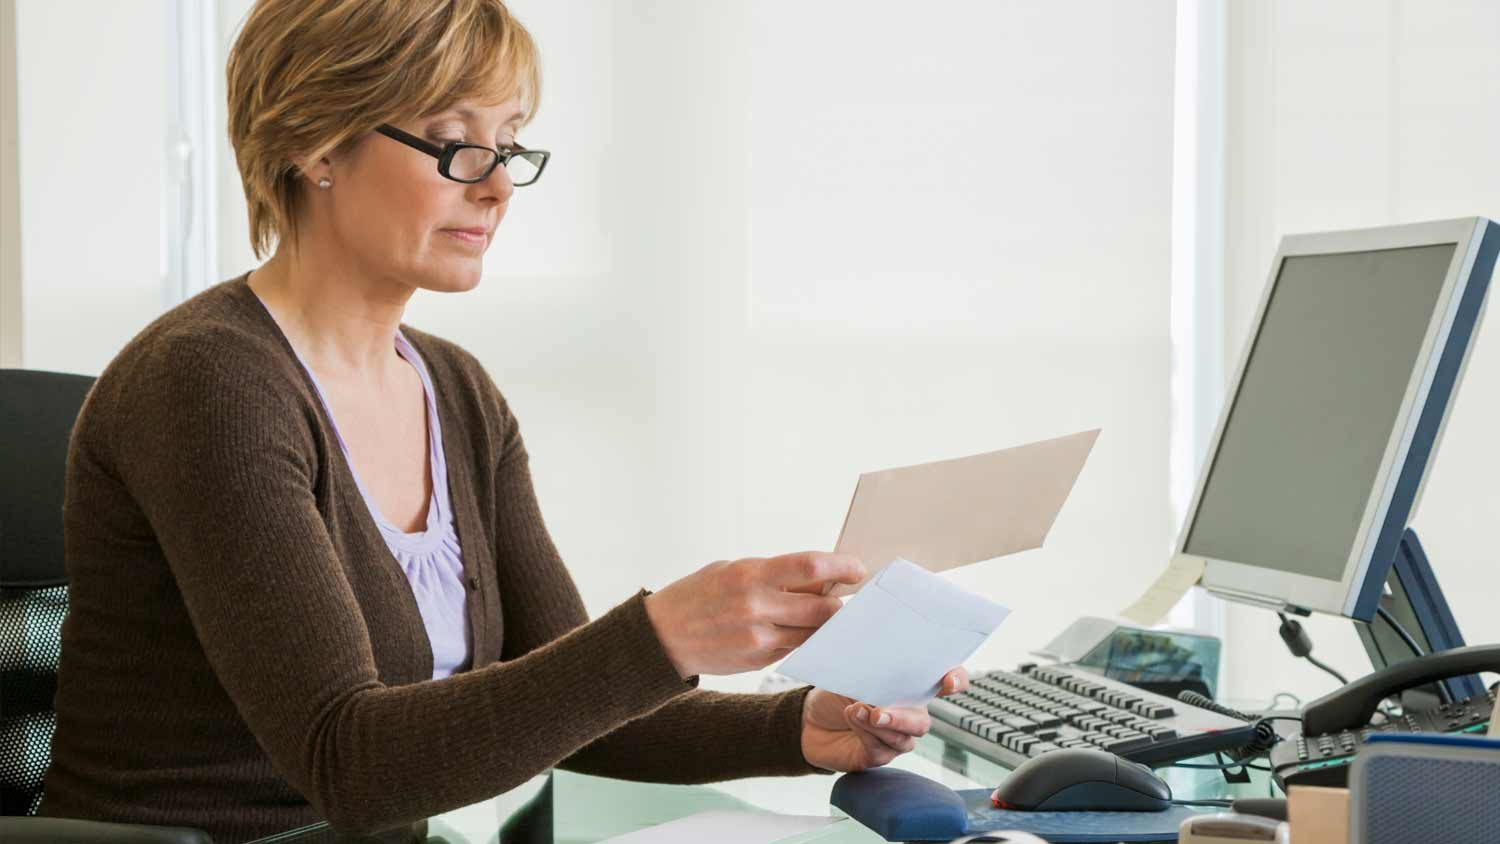 Woman sitting at desk looking at envelopes